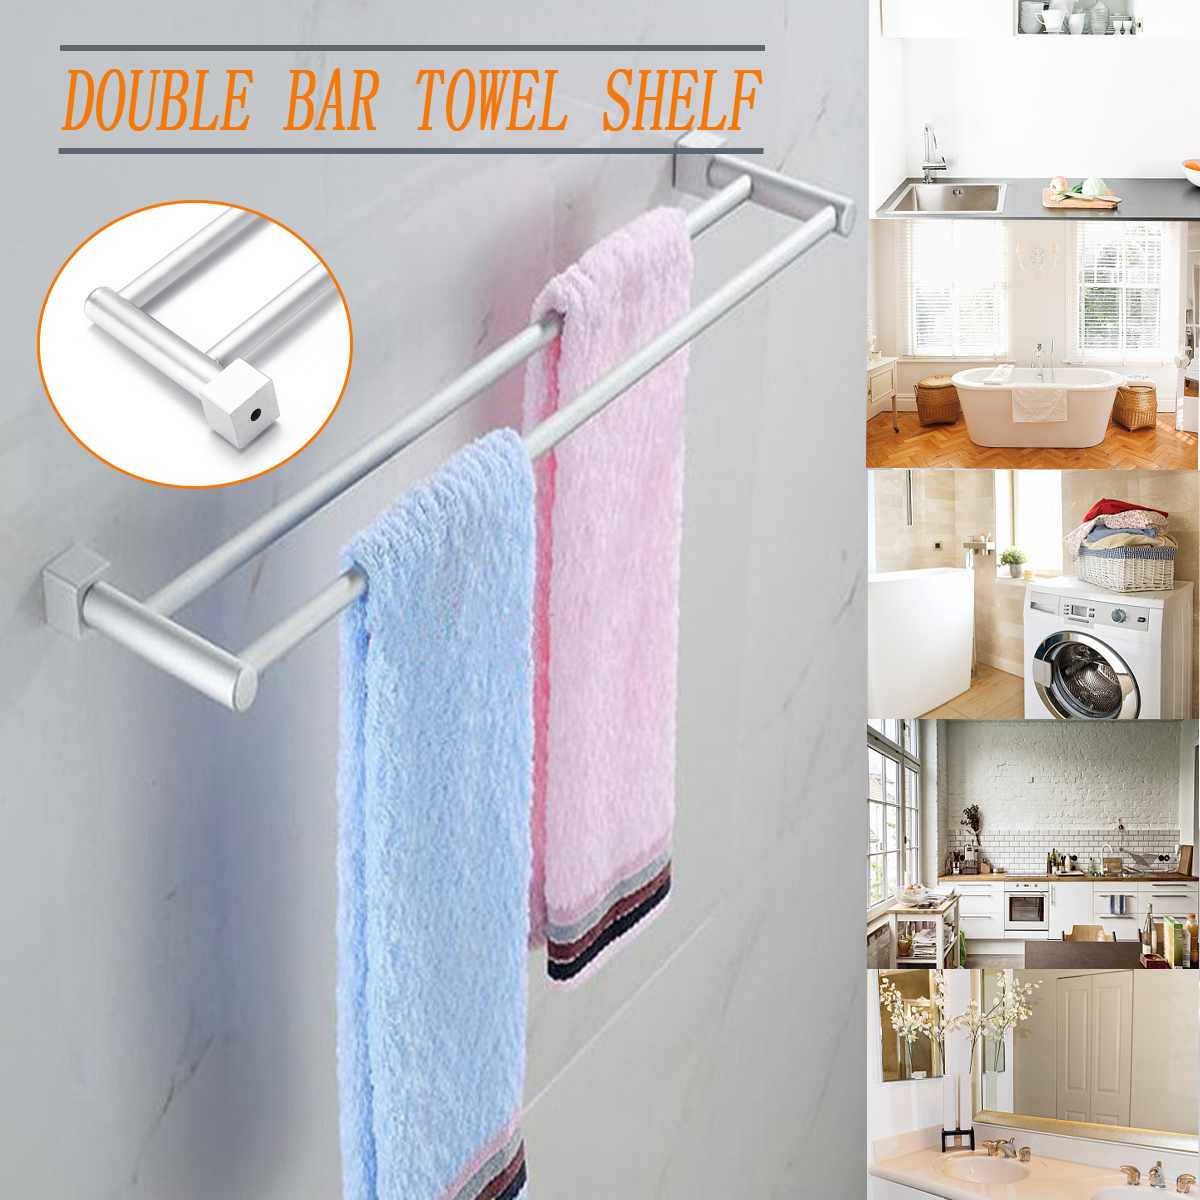 Xueqin Bathroom Double Towel Rail Rack 2 Bar Space Aluminum Hanger Wall Mounted Towel Shelf Bath Rails Bars Holder 58x12cm capputine italian fashion design woman shoes and bag set european rhinestone high heels shoes and bag set for wedding dress g40